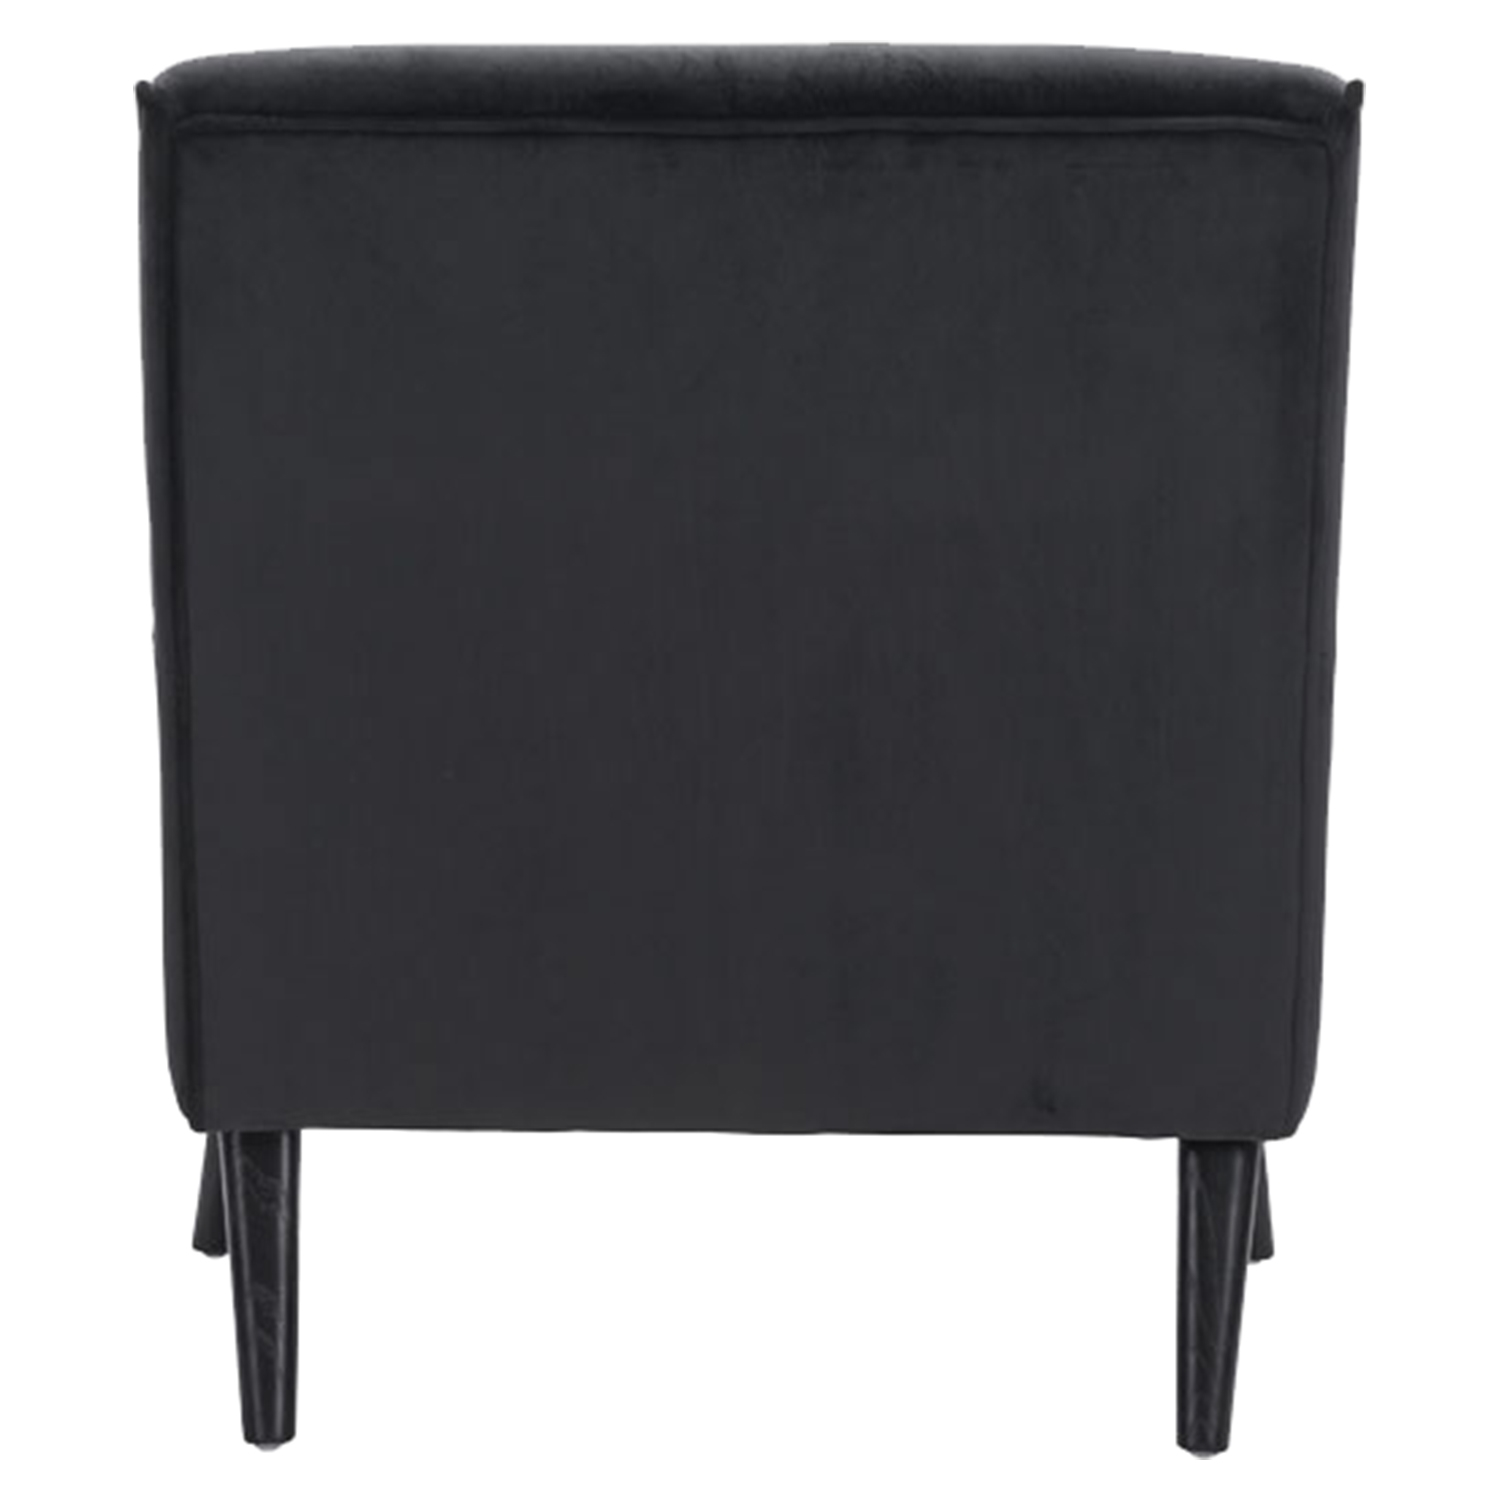 Coney Tufted Arm Chair - Black Velvet - ZM-100224